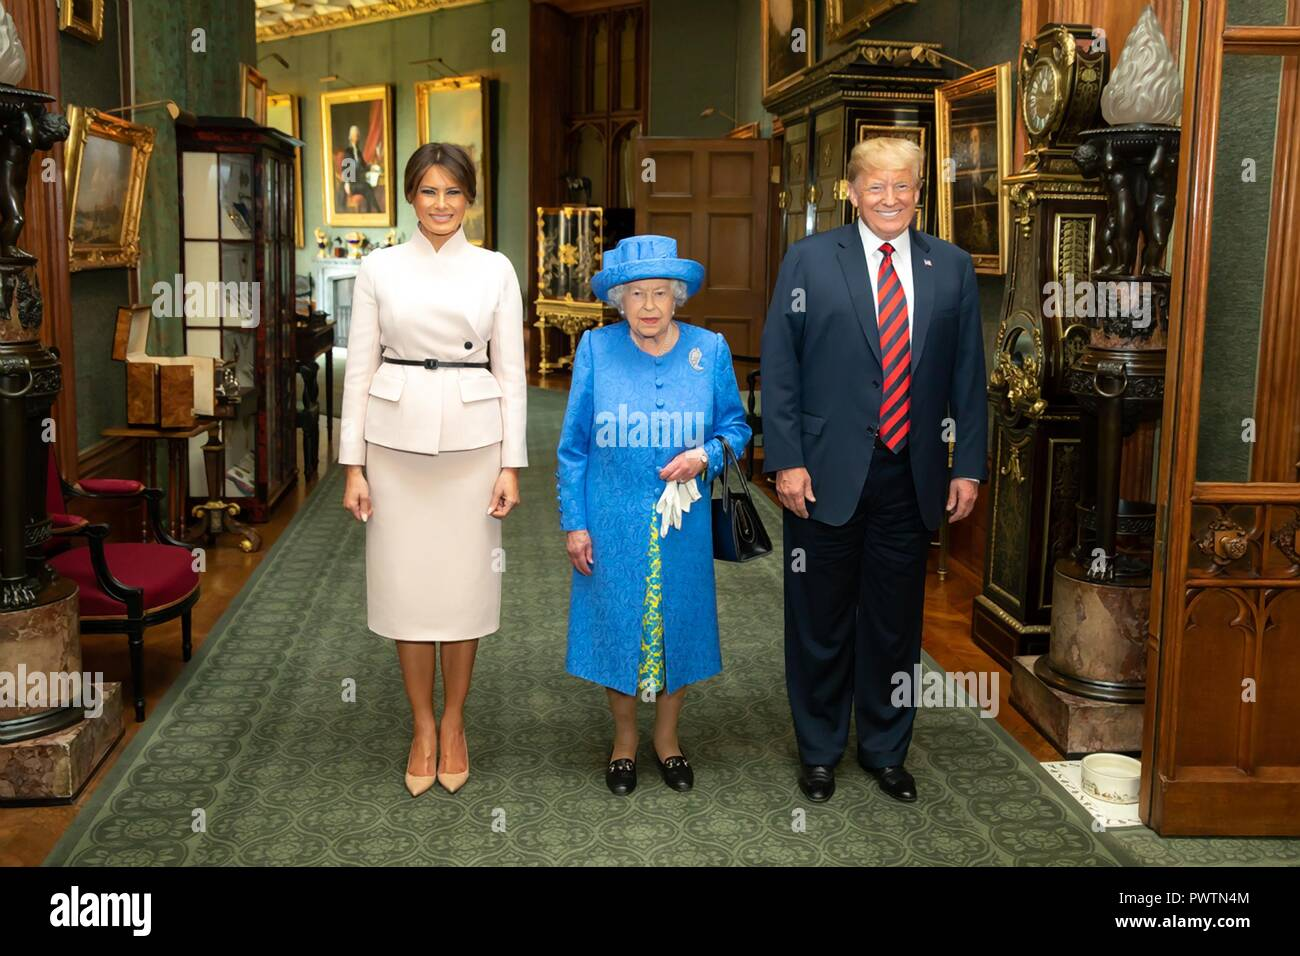 U.S First Lady Melania Trump, Her Majesty Queen Elizabeth II and President Donald Trump at Windsor Castle July 13, 2018 in Windsor, United Kingdom. Stock Photo